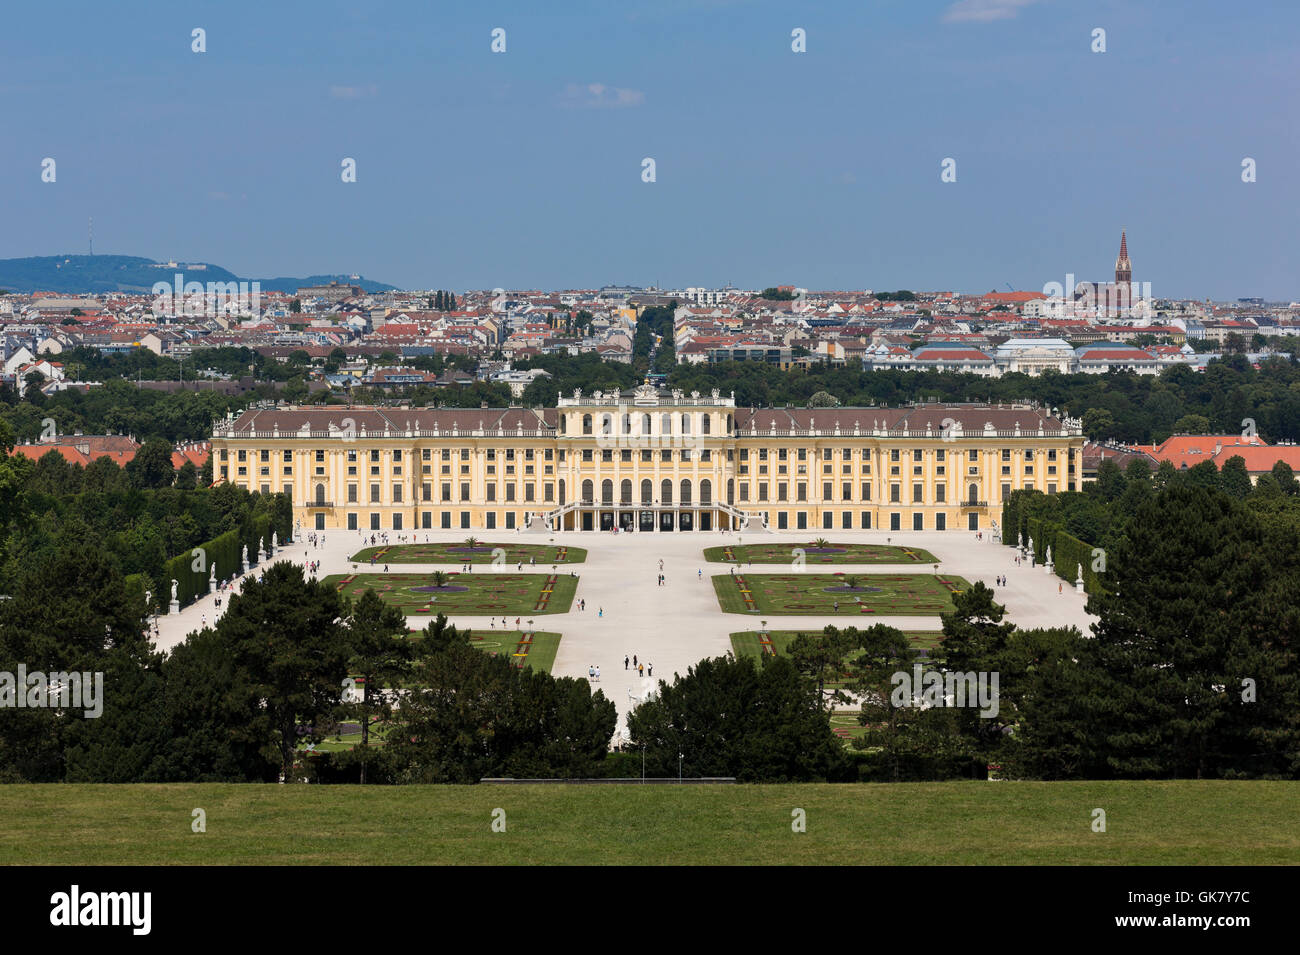 Austria, Schonbrunn Palace in Vienna, which is the former imperial modern living room Rococo summer 1441 in Vienna - Stock Image